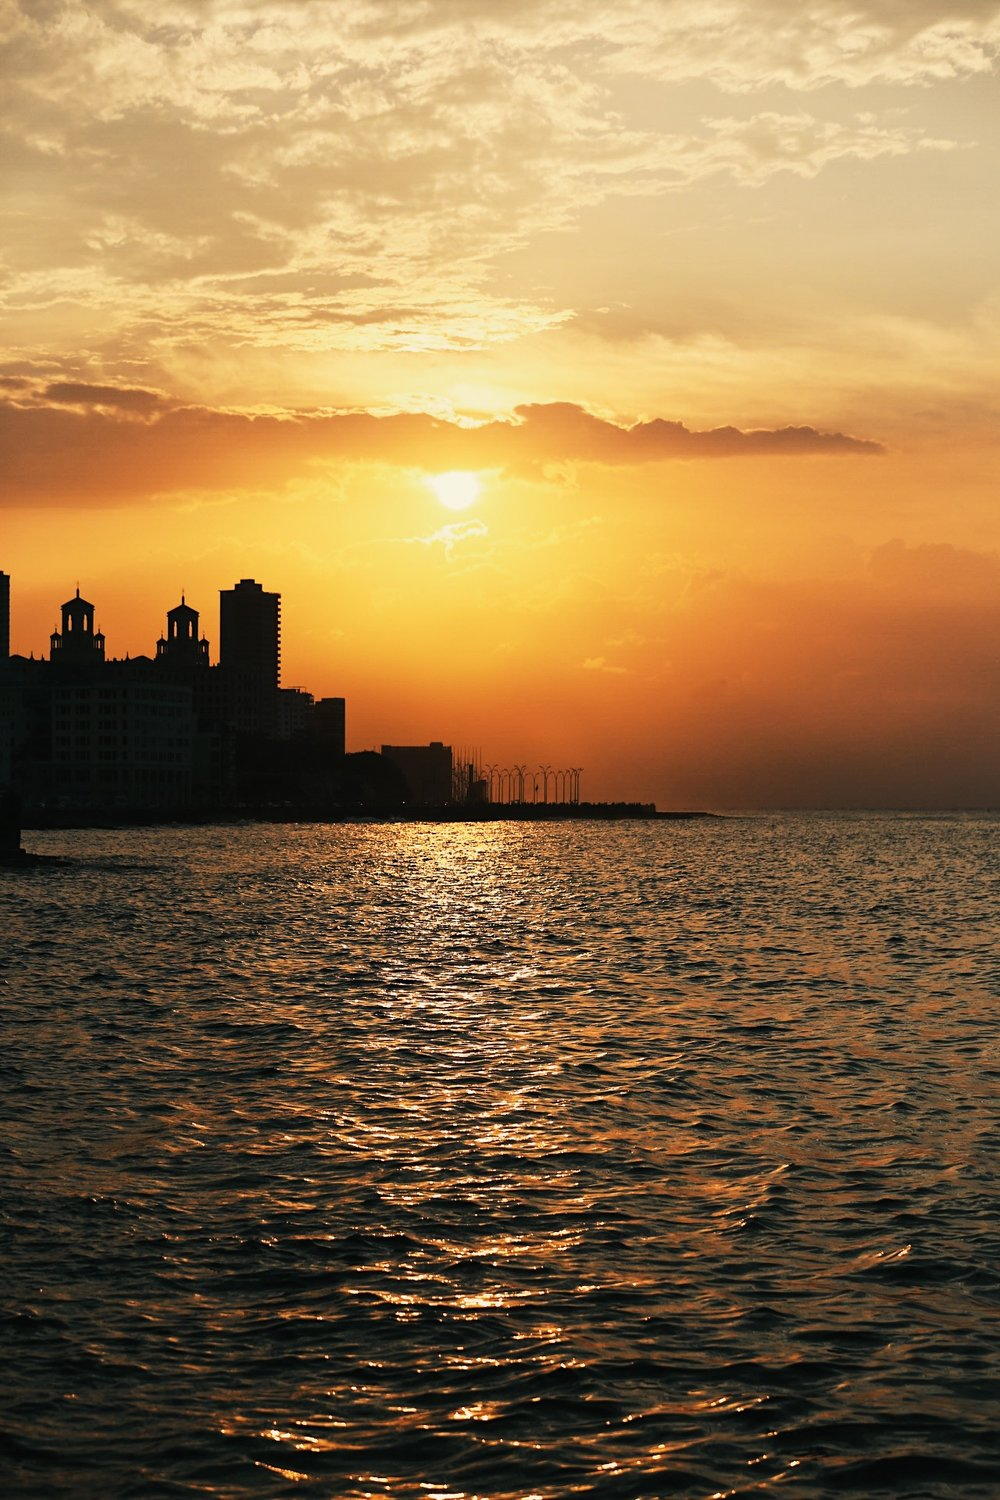 sunset over water.jpg